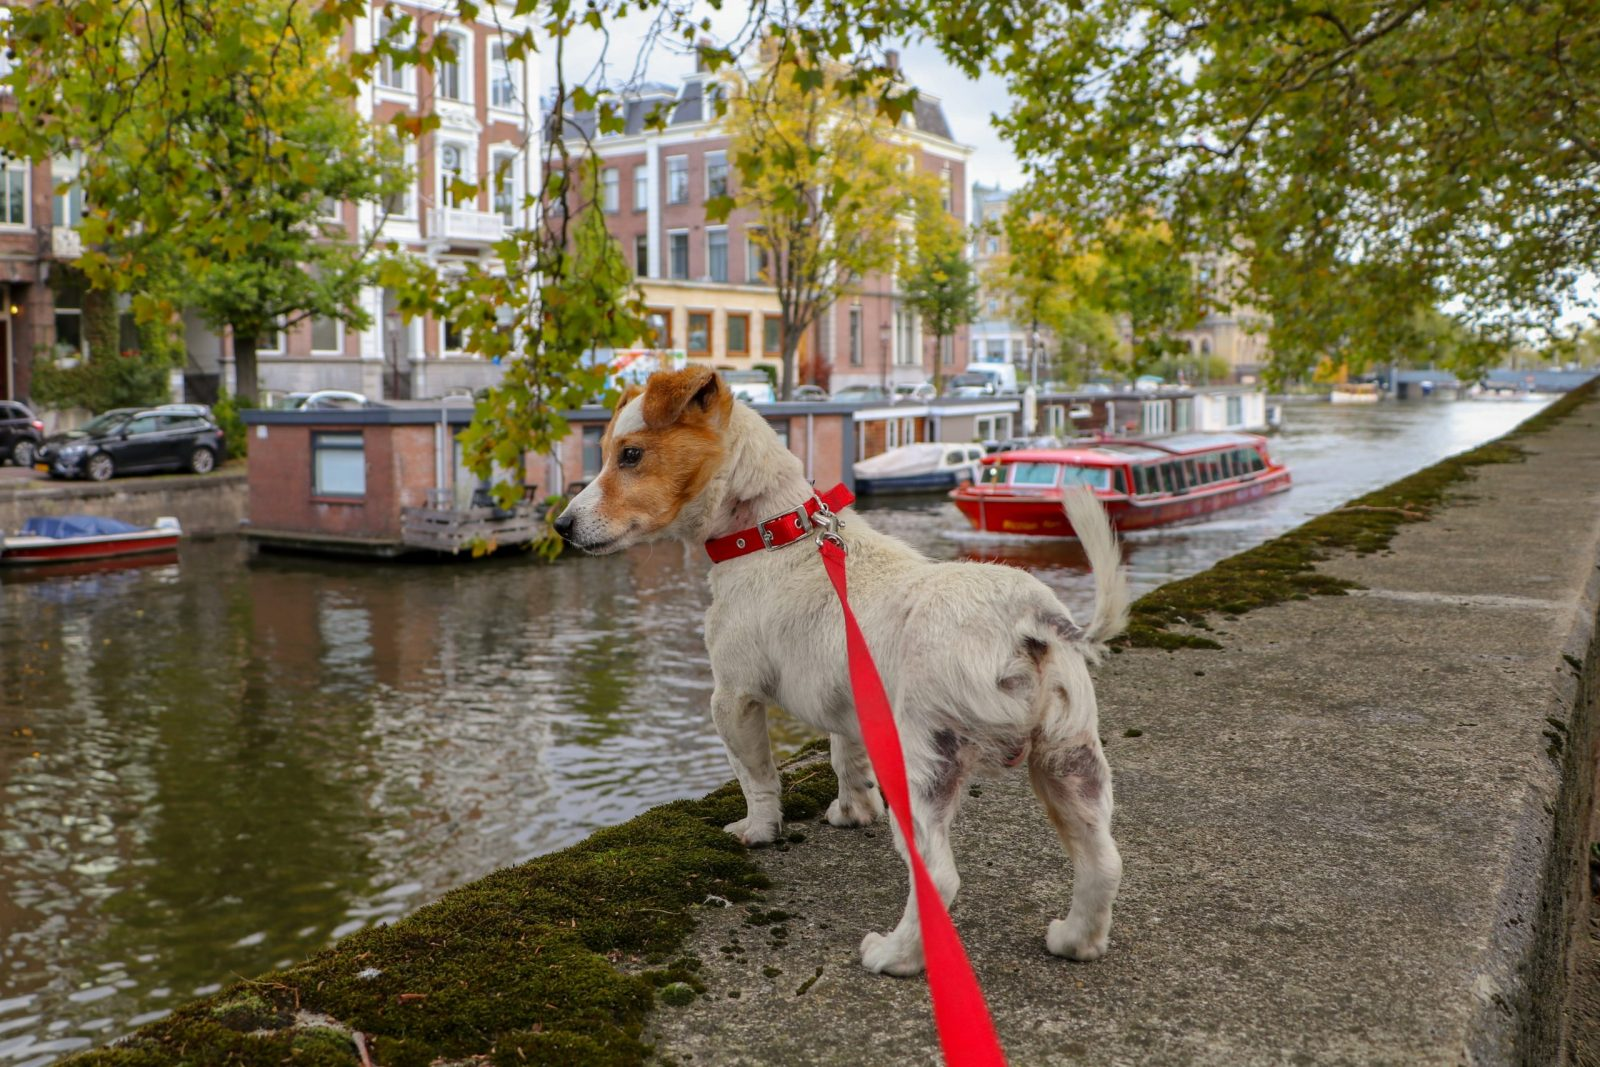 Dog at the Amsterdam canals by Marieke Koenders